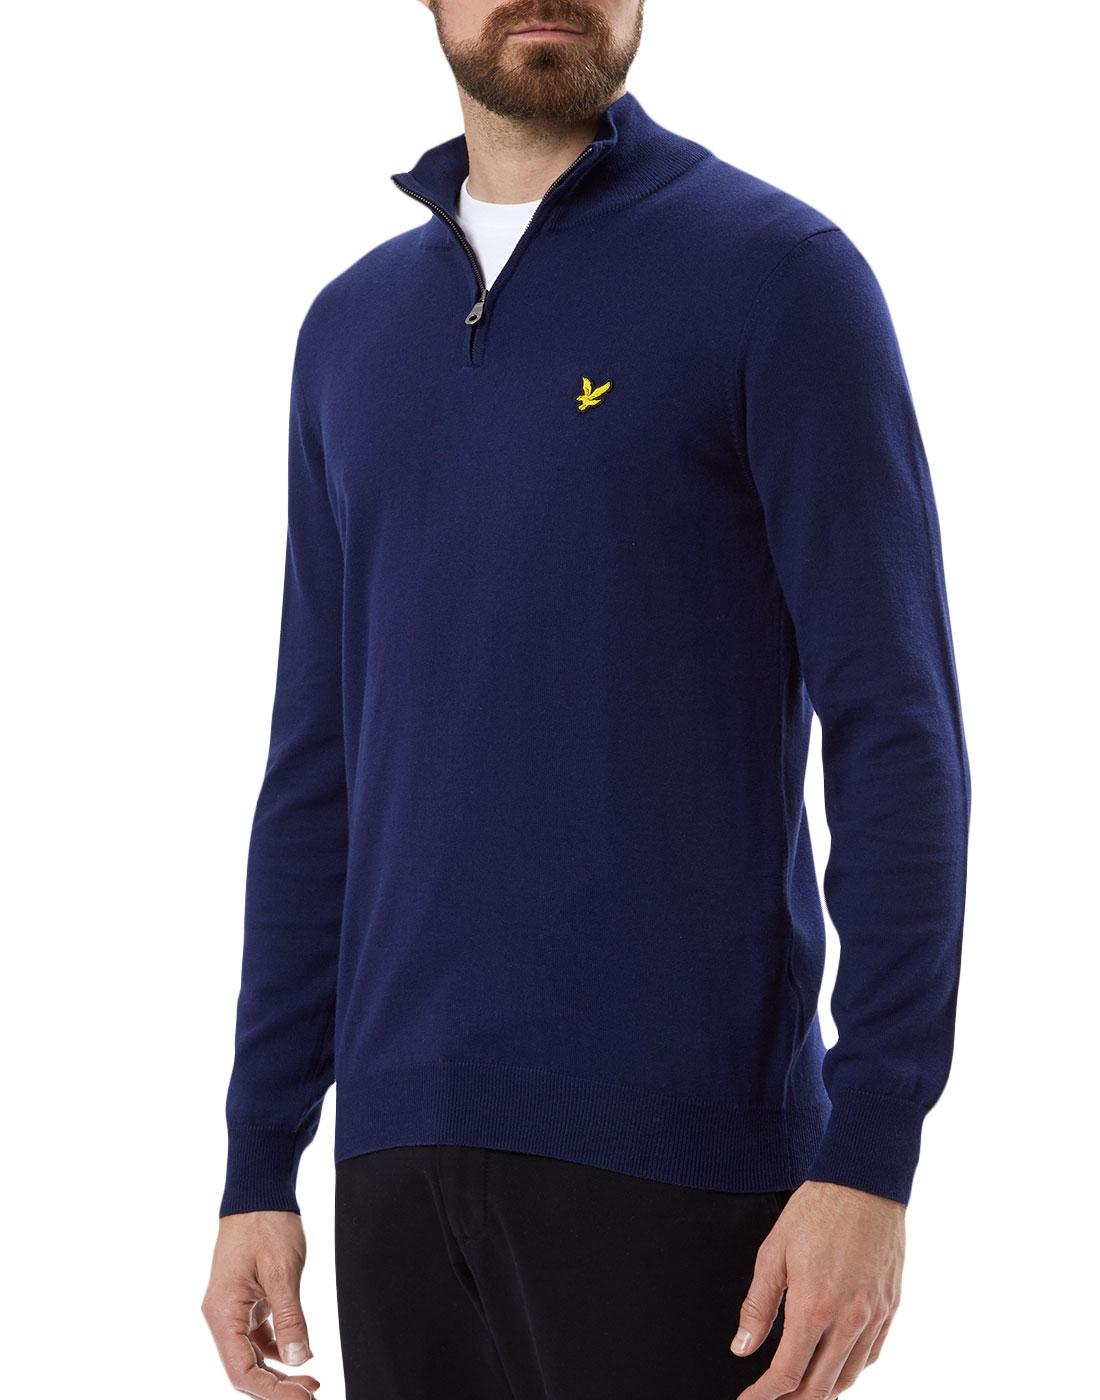 LYLE & SCOTT Mod 1/4 Zip Cotton Merino Knit Jumper